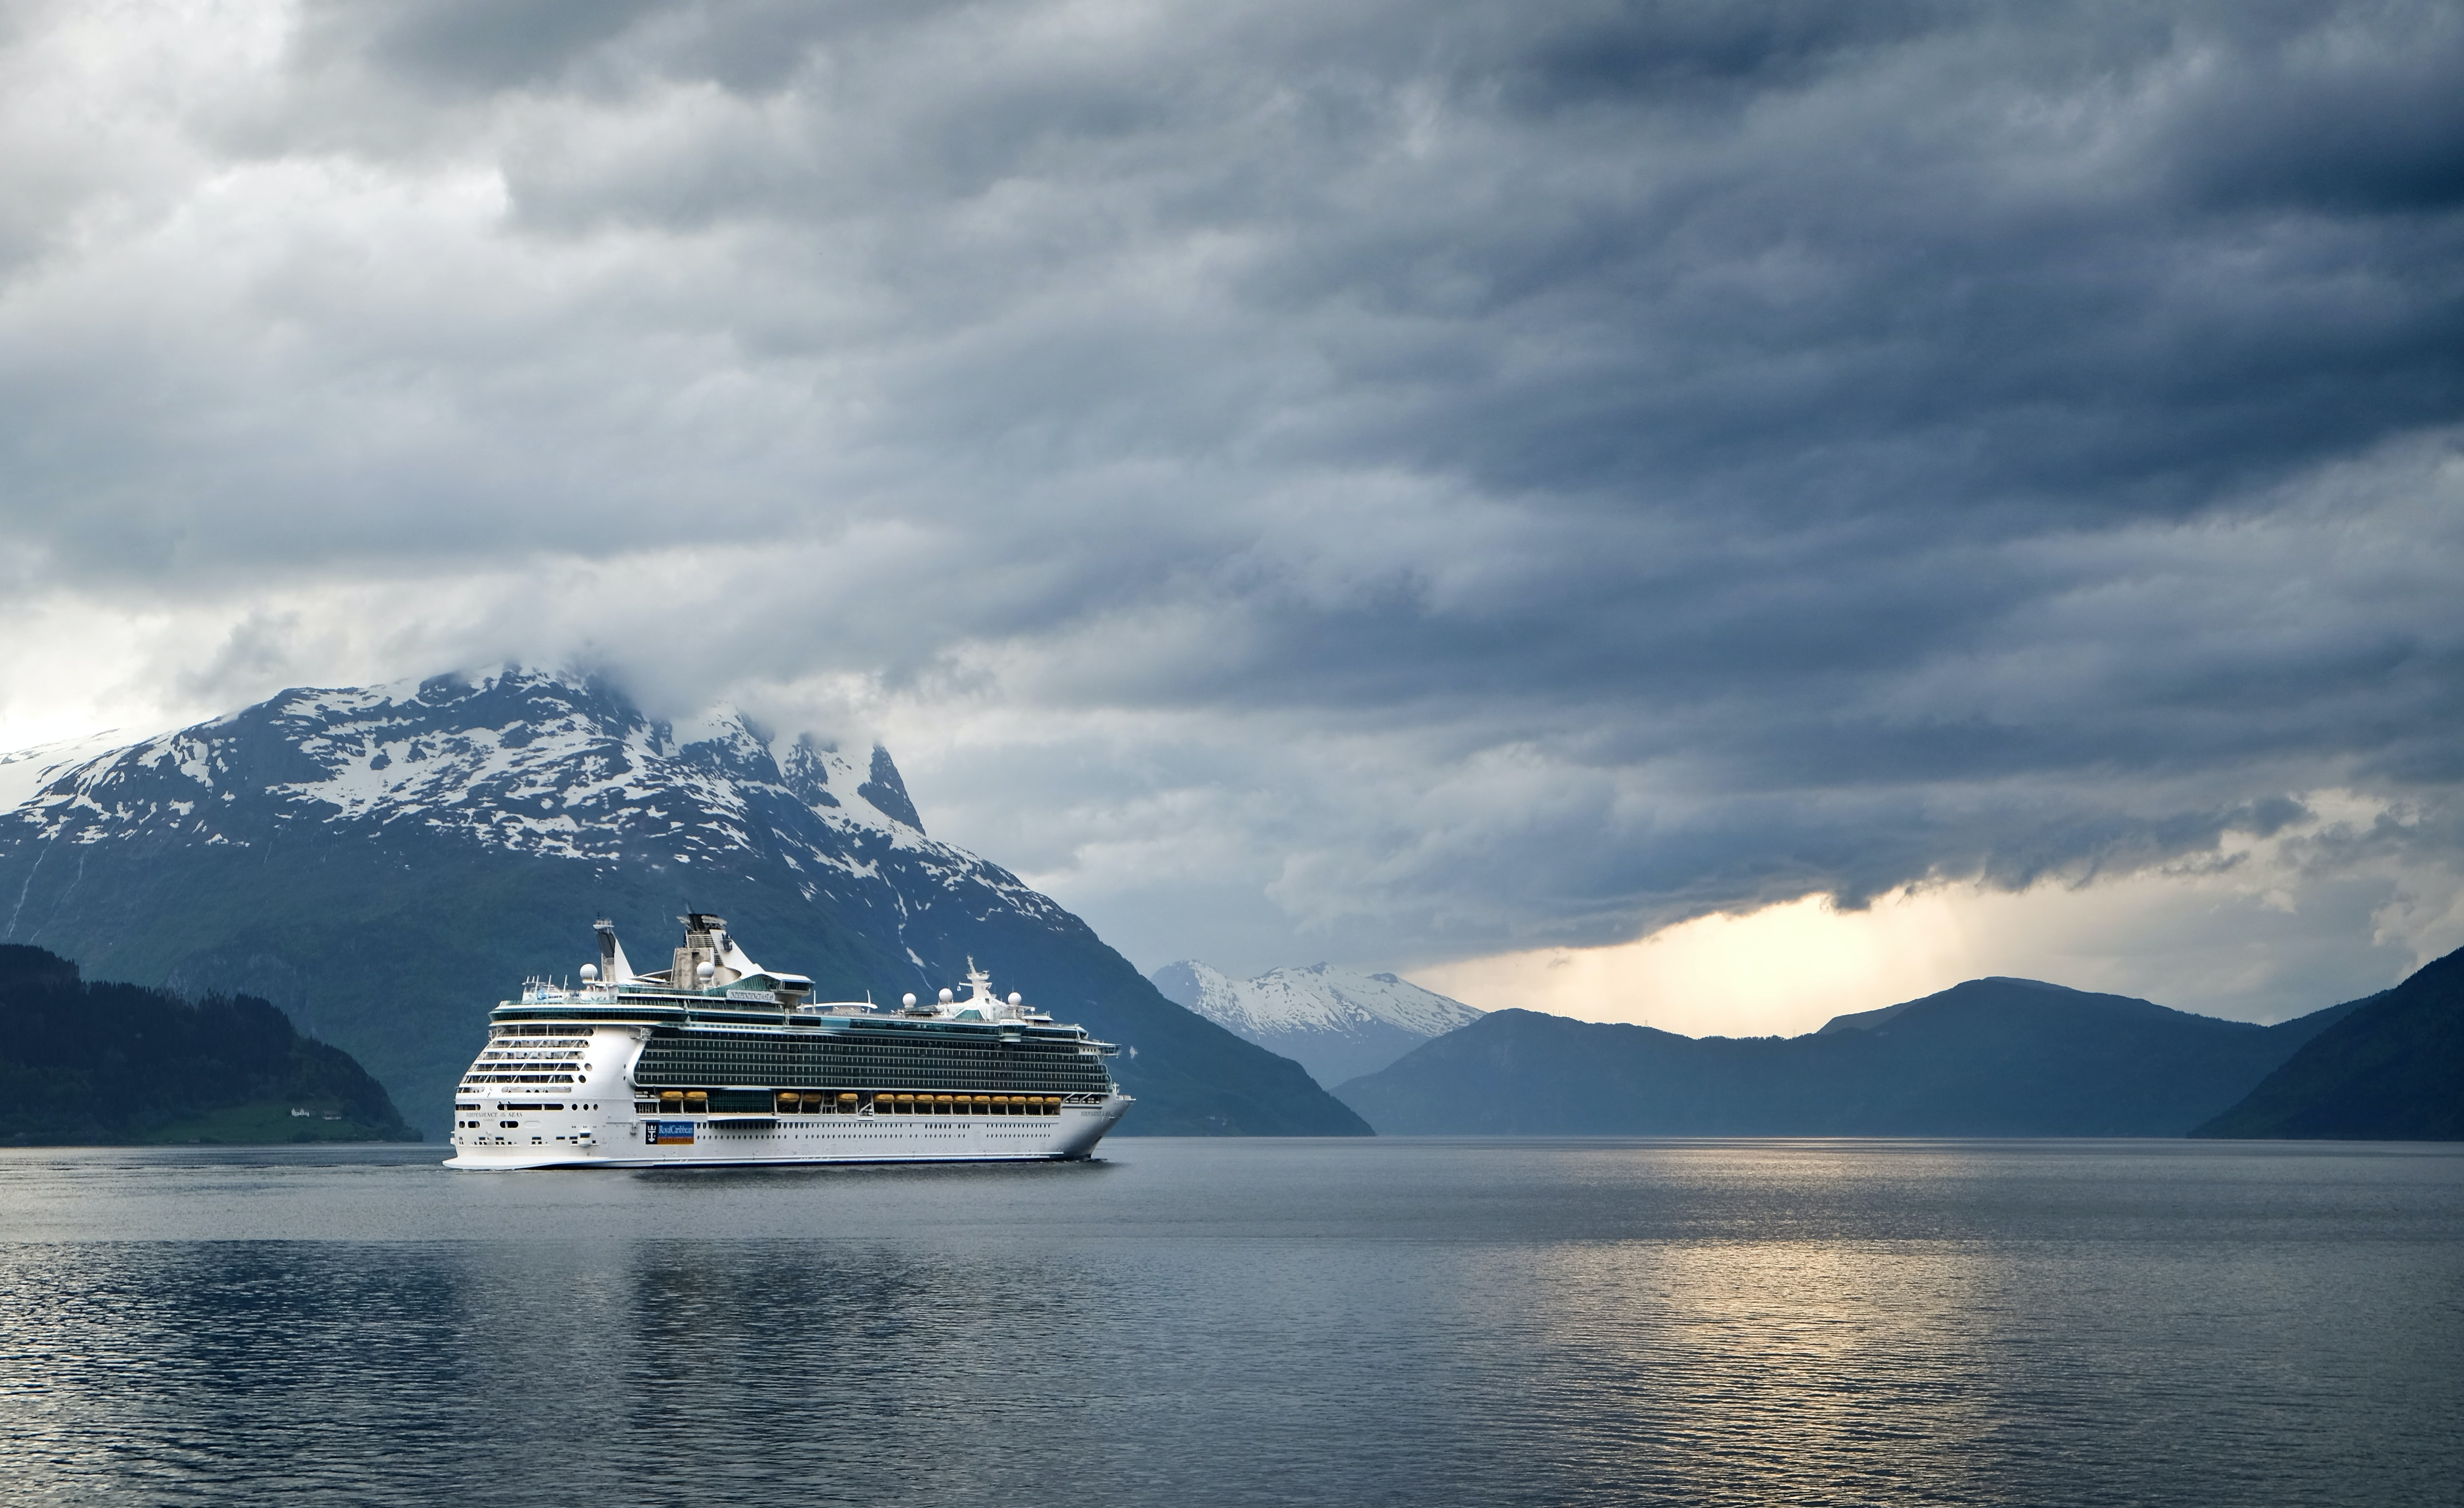 A cruise ship on a mountain lake with heavy clouds above